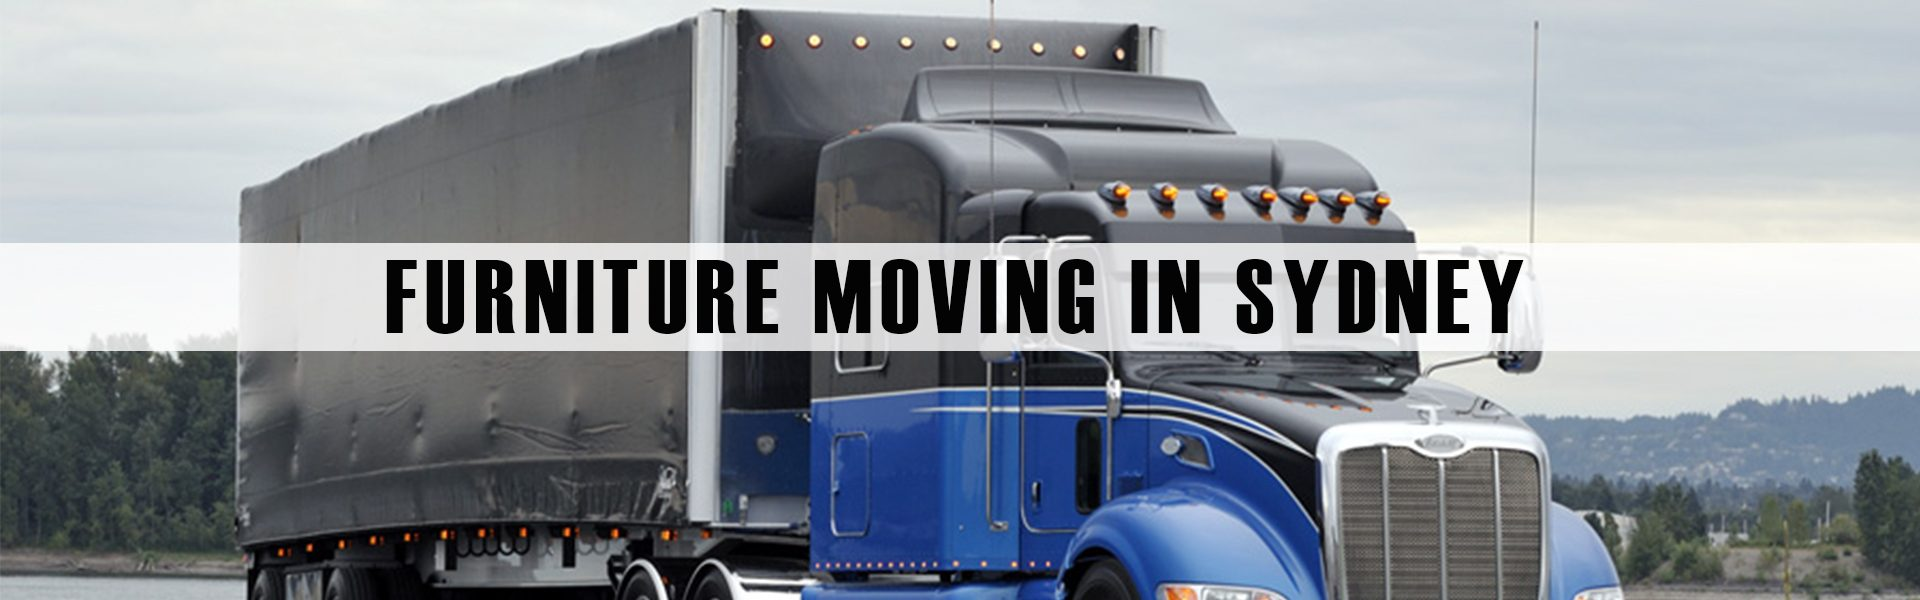 Furniture Moving in Sydney